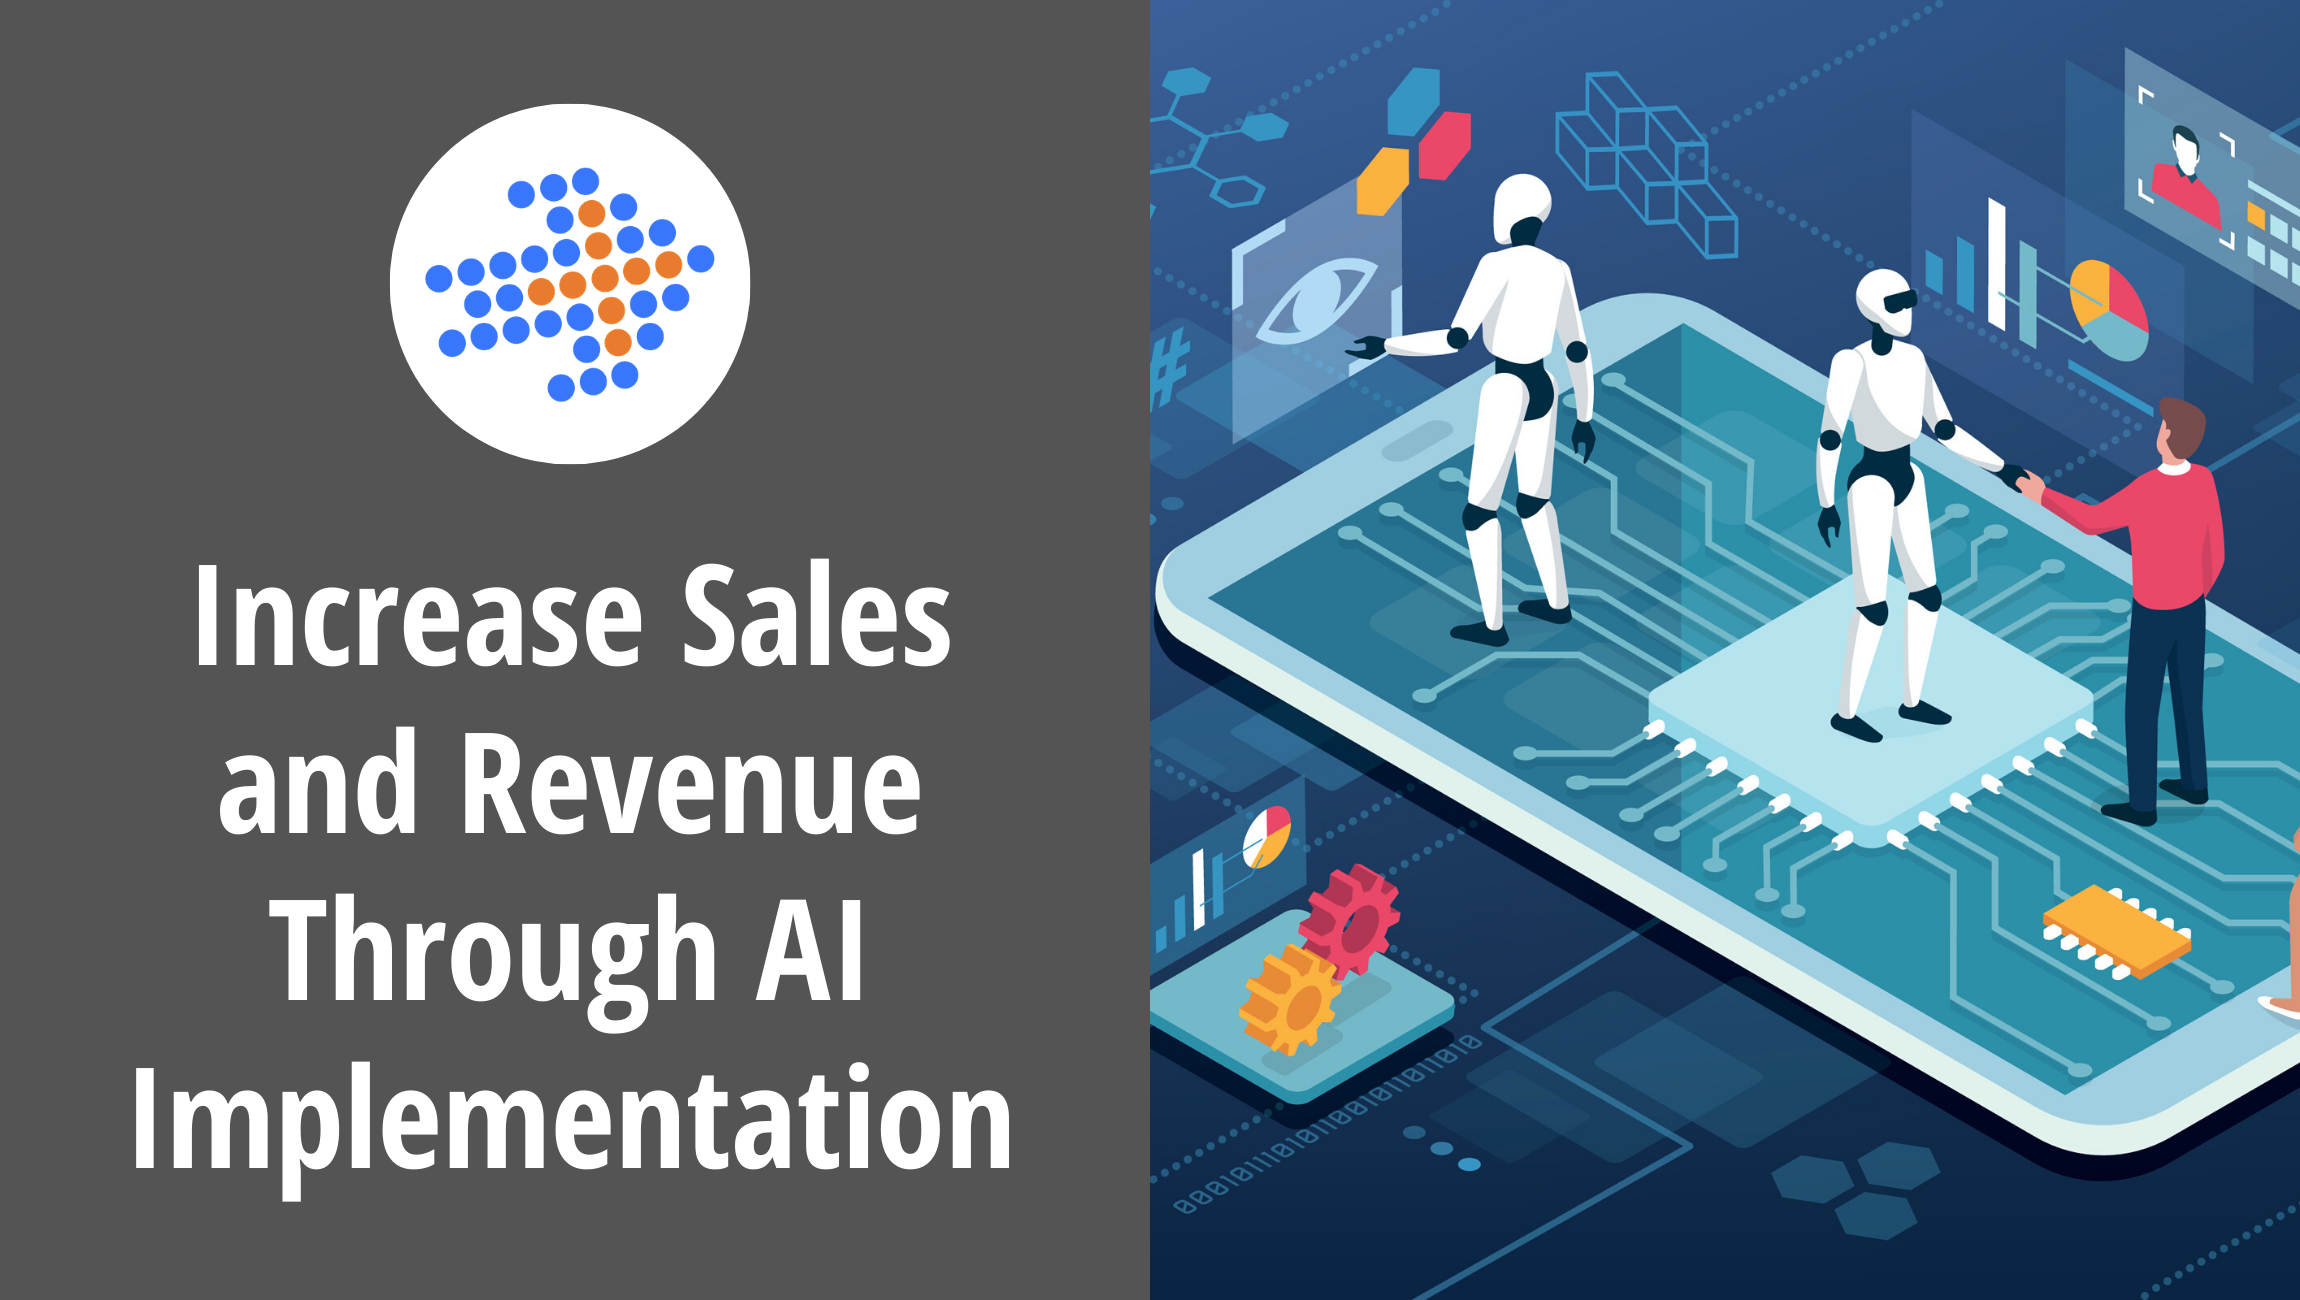 Increase Sales and Revenue Through AI Implementation